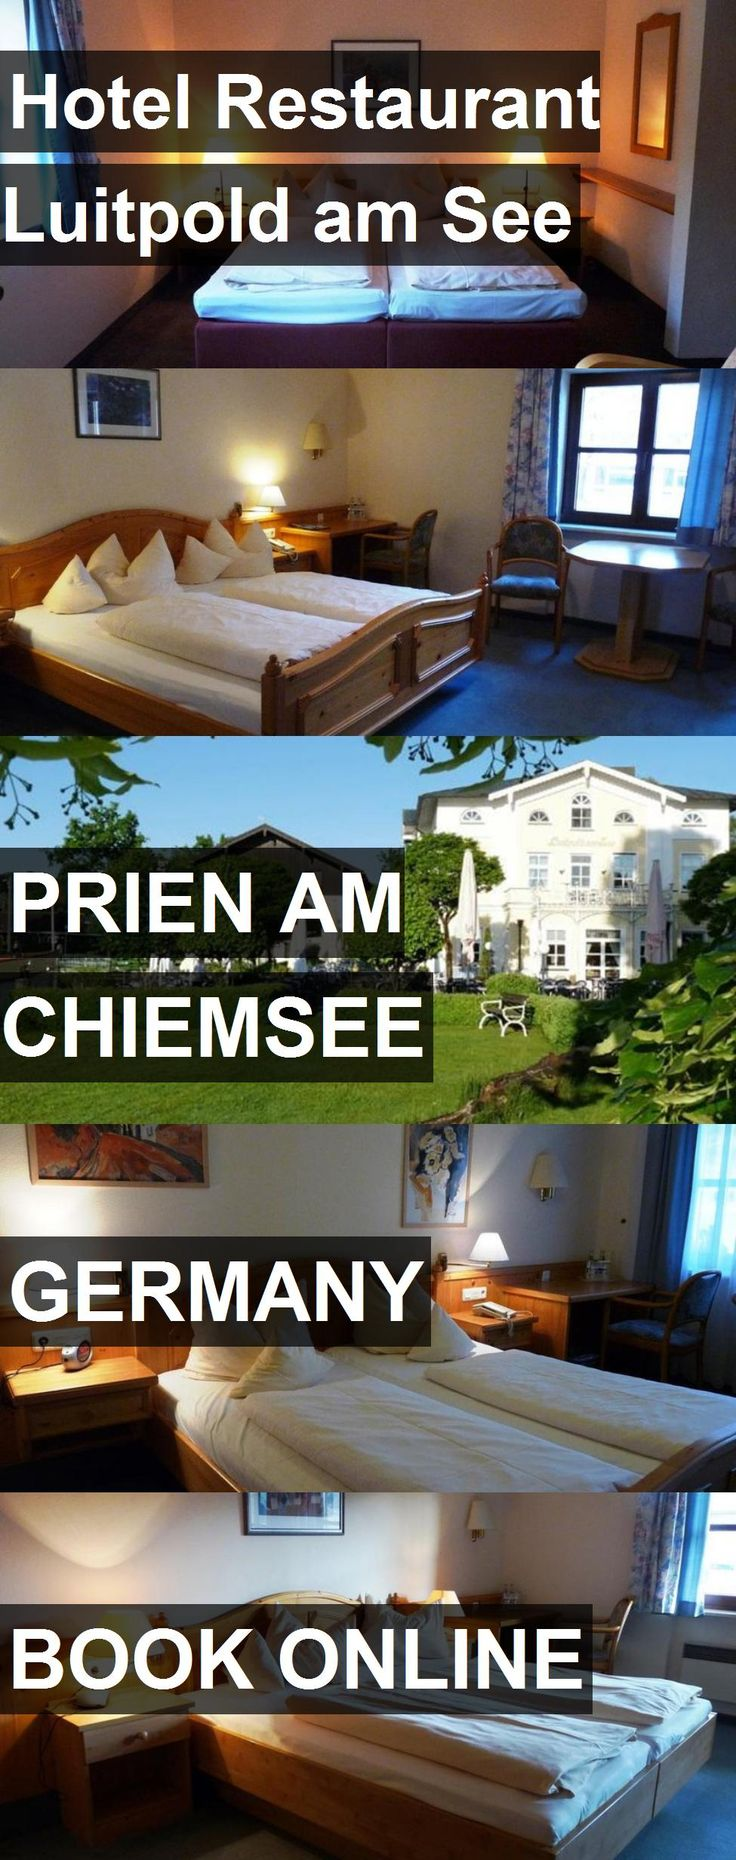 Hotel Restaurant Luitpold am See in Prien am Chiemsee, Germany. For more information, photos, reviews and best prices please follow the link. #Germany #PrienamChiemsee #travel #vacation #hotel